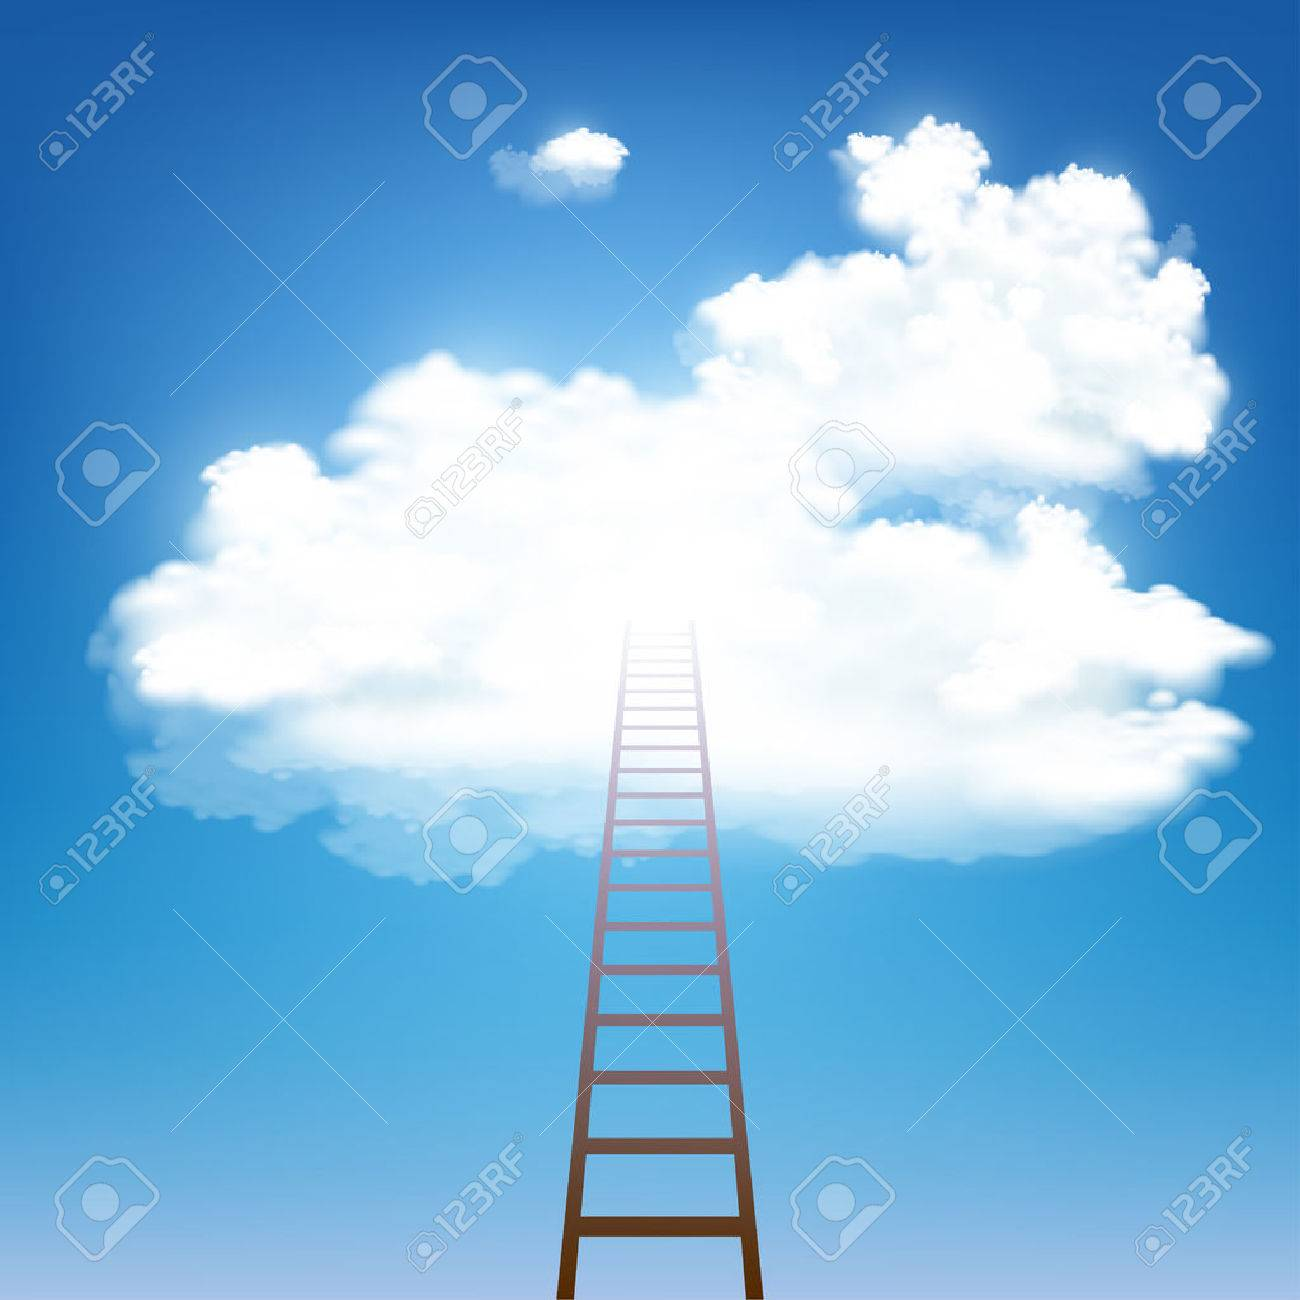 Stairway rises to the clouds. Stock vector illustration. - 58745690